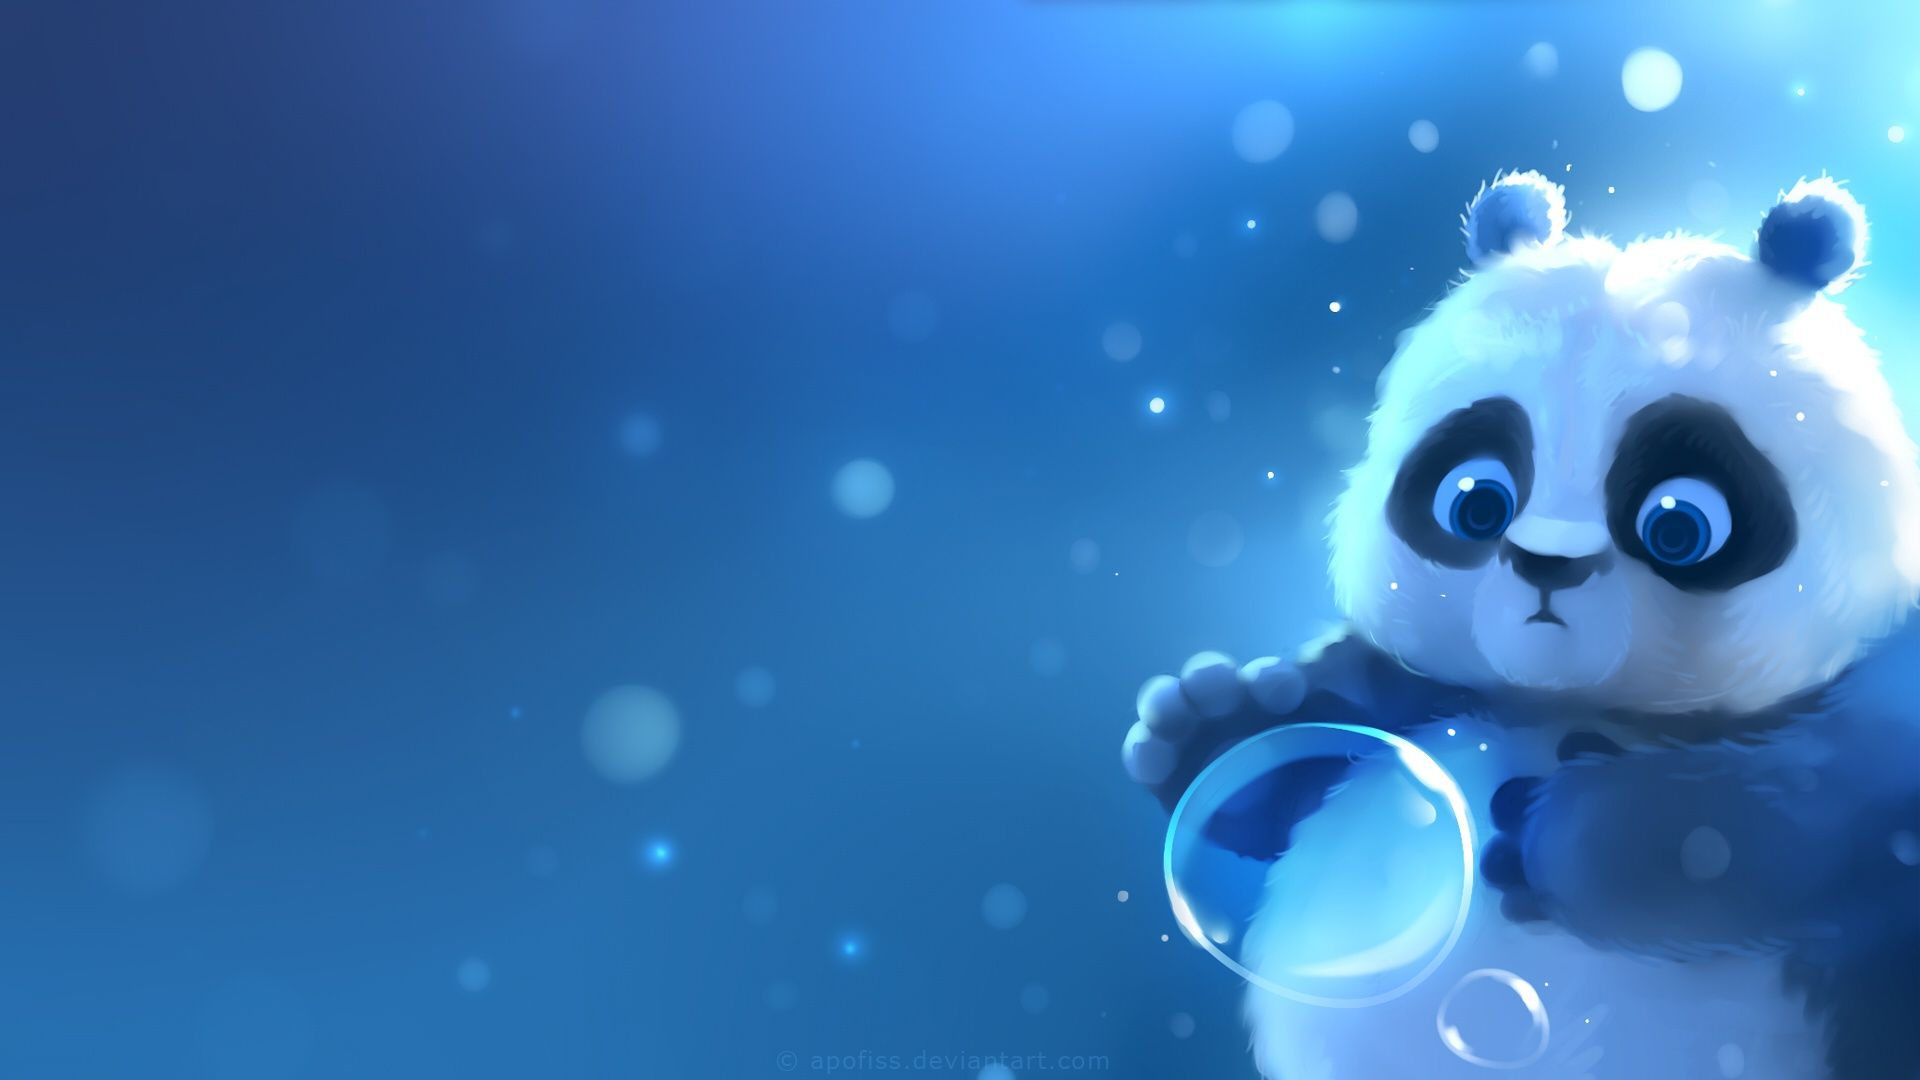 Download Wallpaper Panda, Bubble, By Apofiss, Section Painting